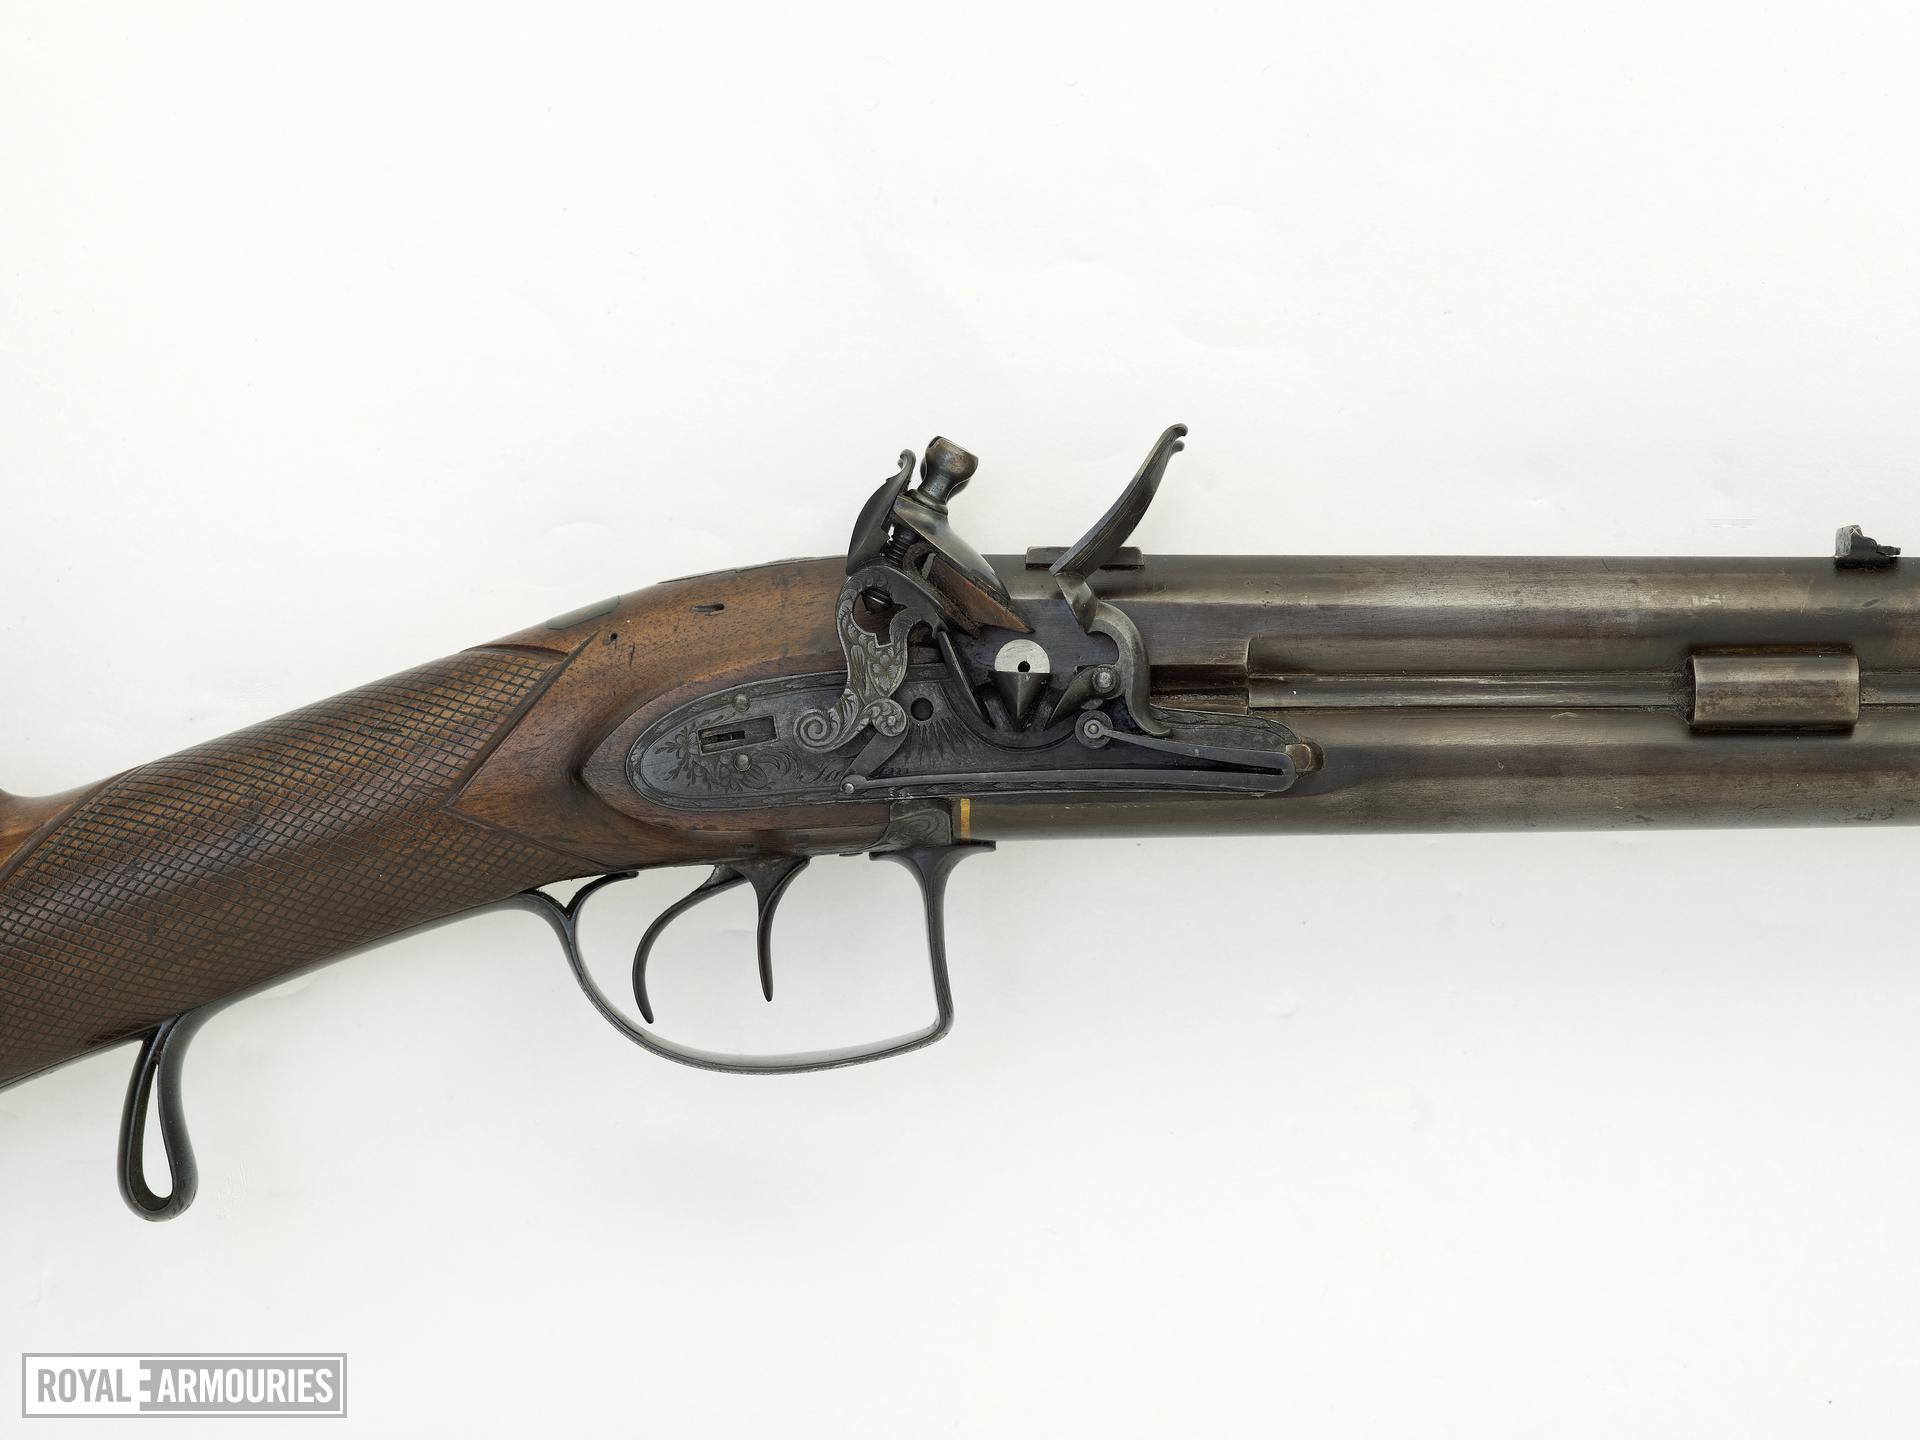 Flintlock double barrelled muzzle-loading presentation rifle - By Tatham Barrel probably by William Fullerd